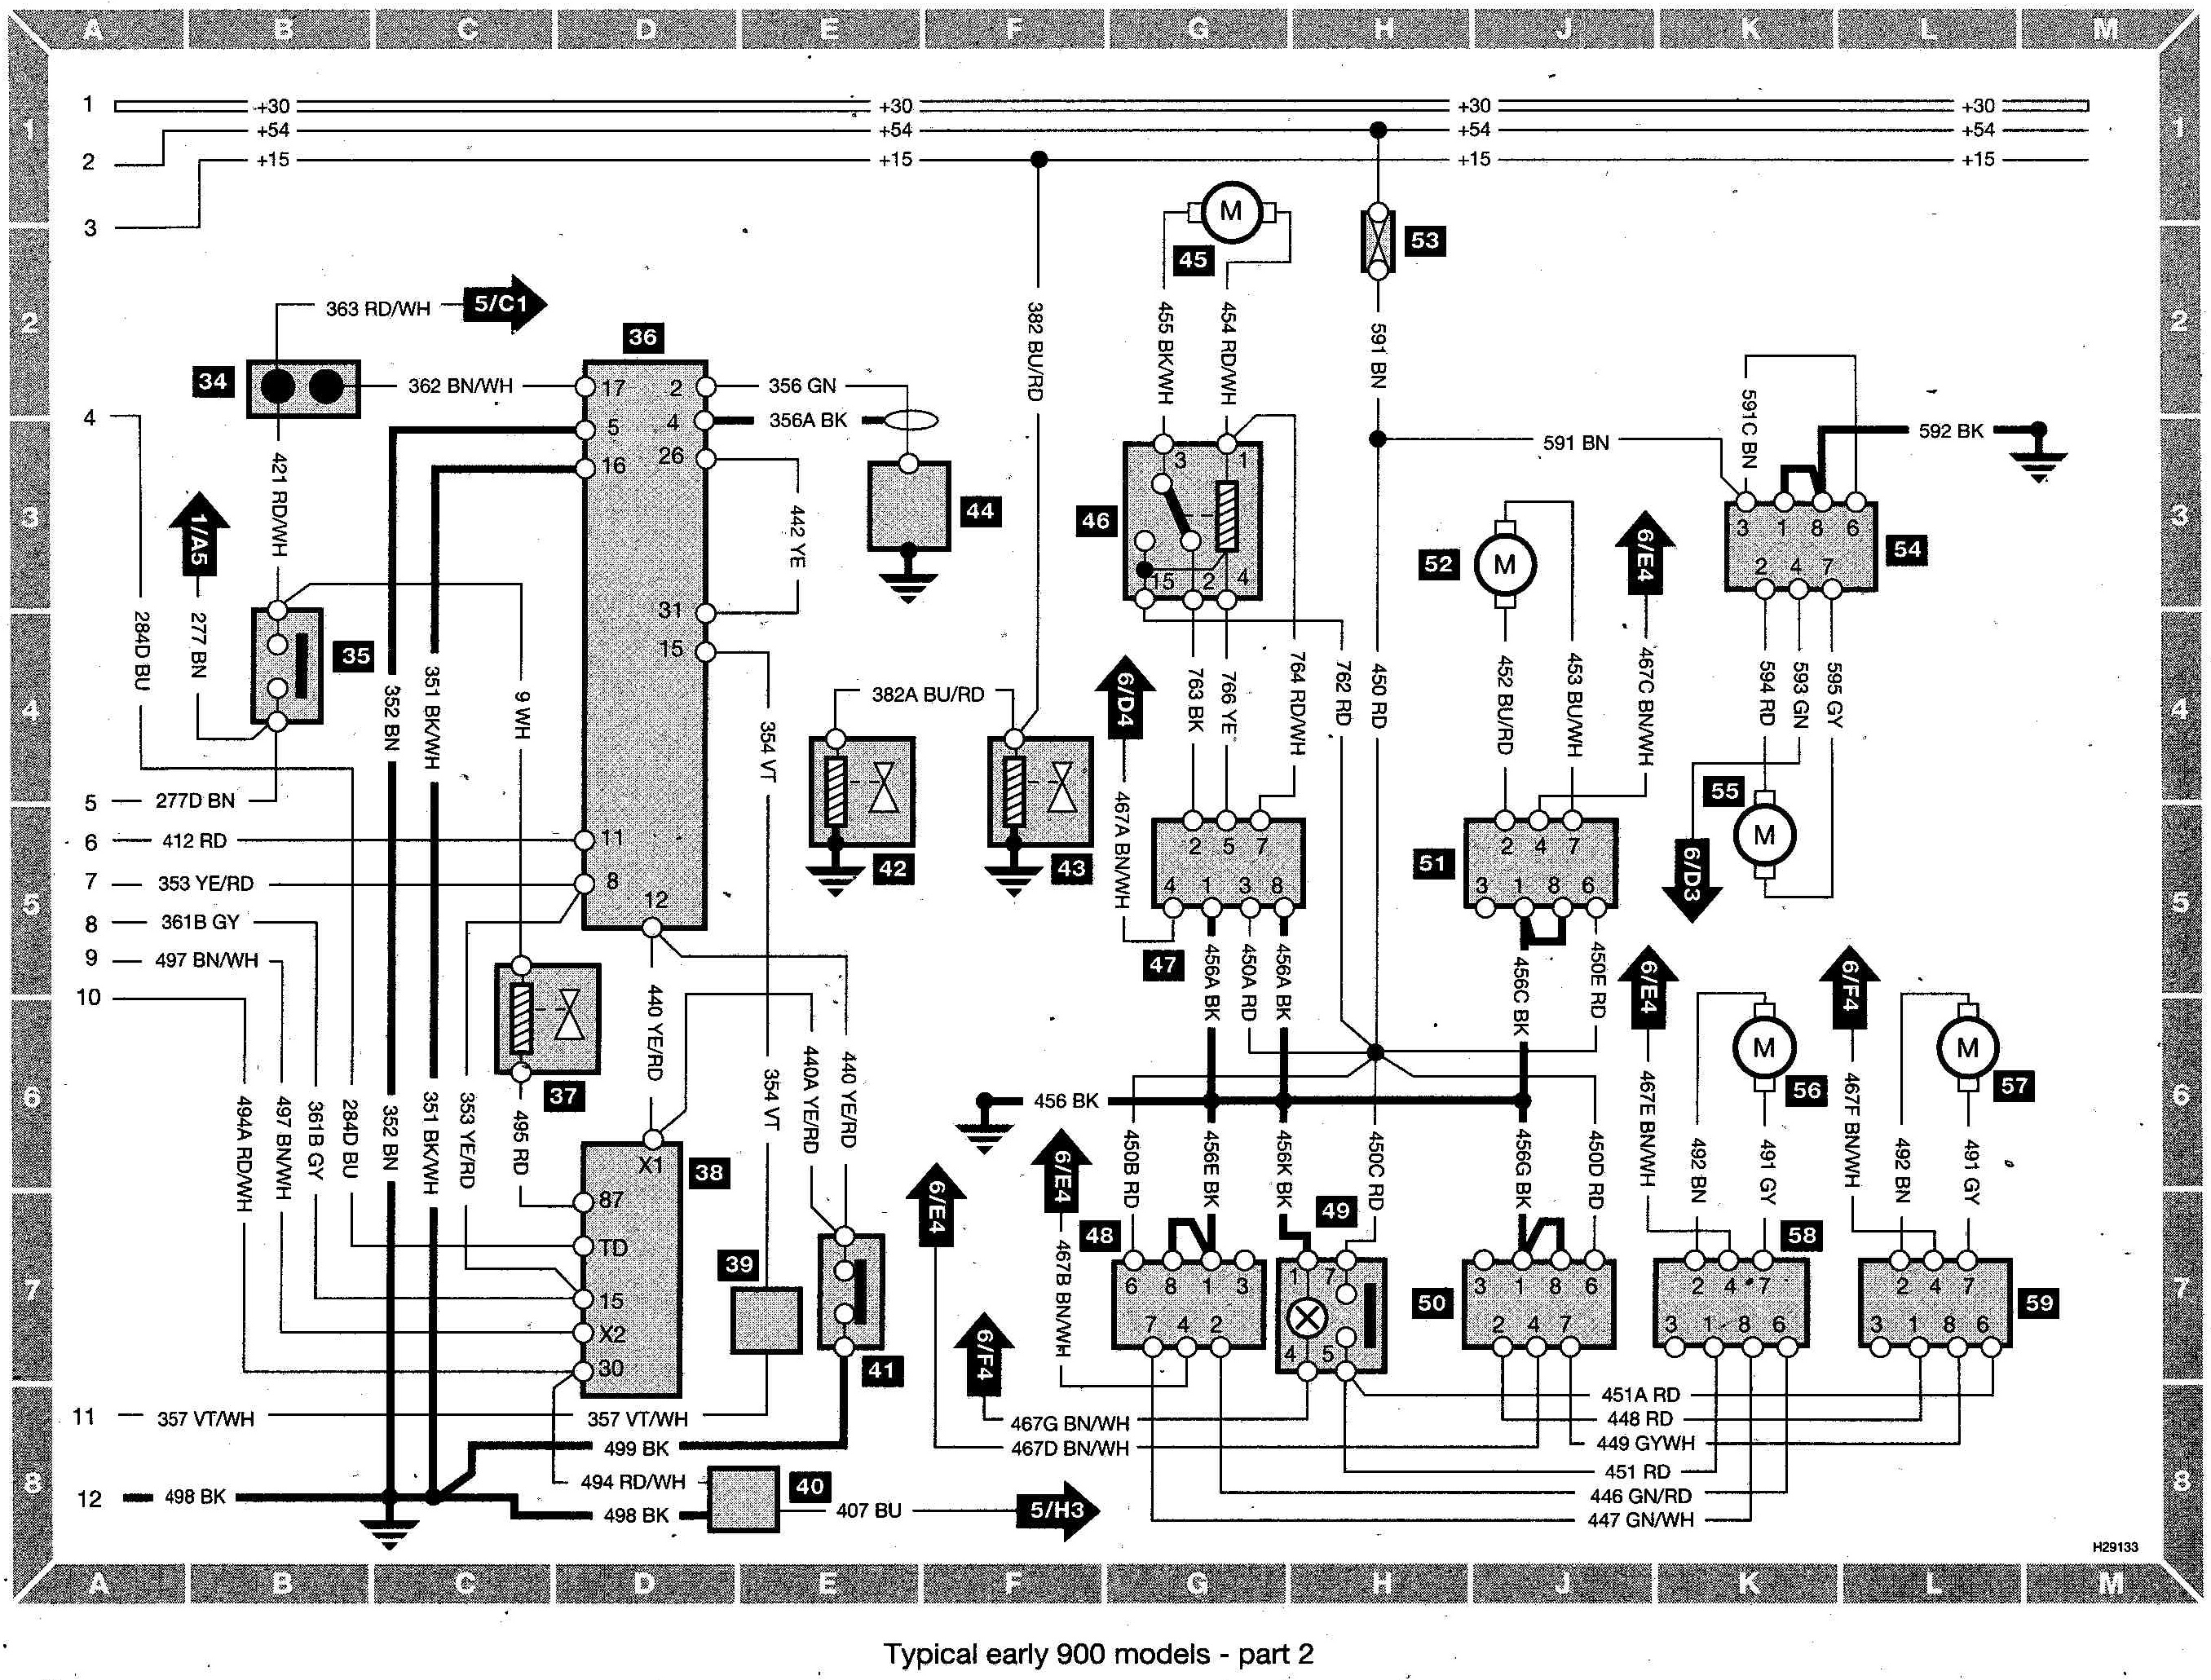 Saab 900 Wiring diagram (early models) part 2?resized665%2C505 2005 saab radio wiring diagram efcaviation com saab wiring diagram 9 3 at alyssarenee.co